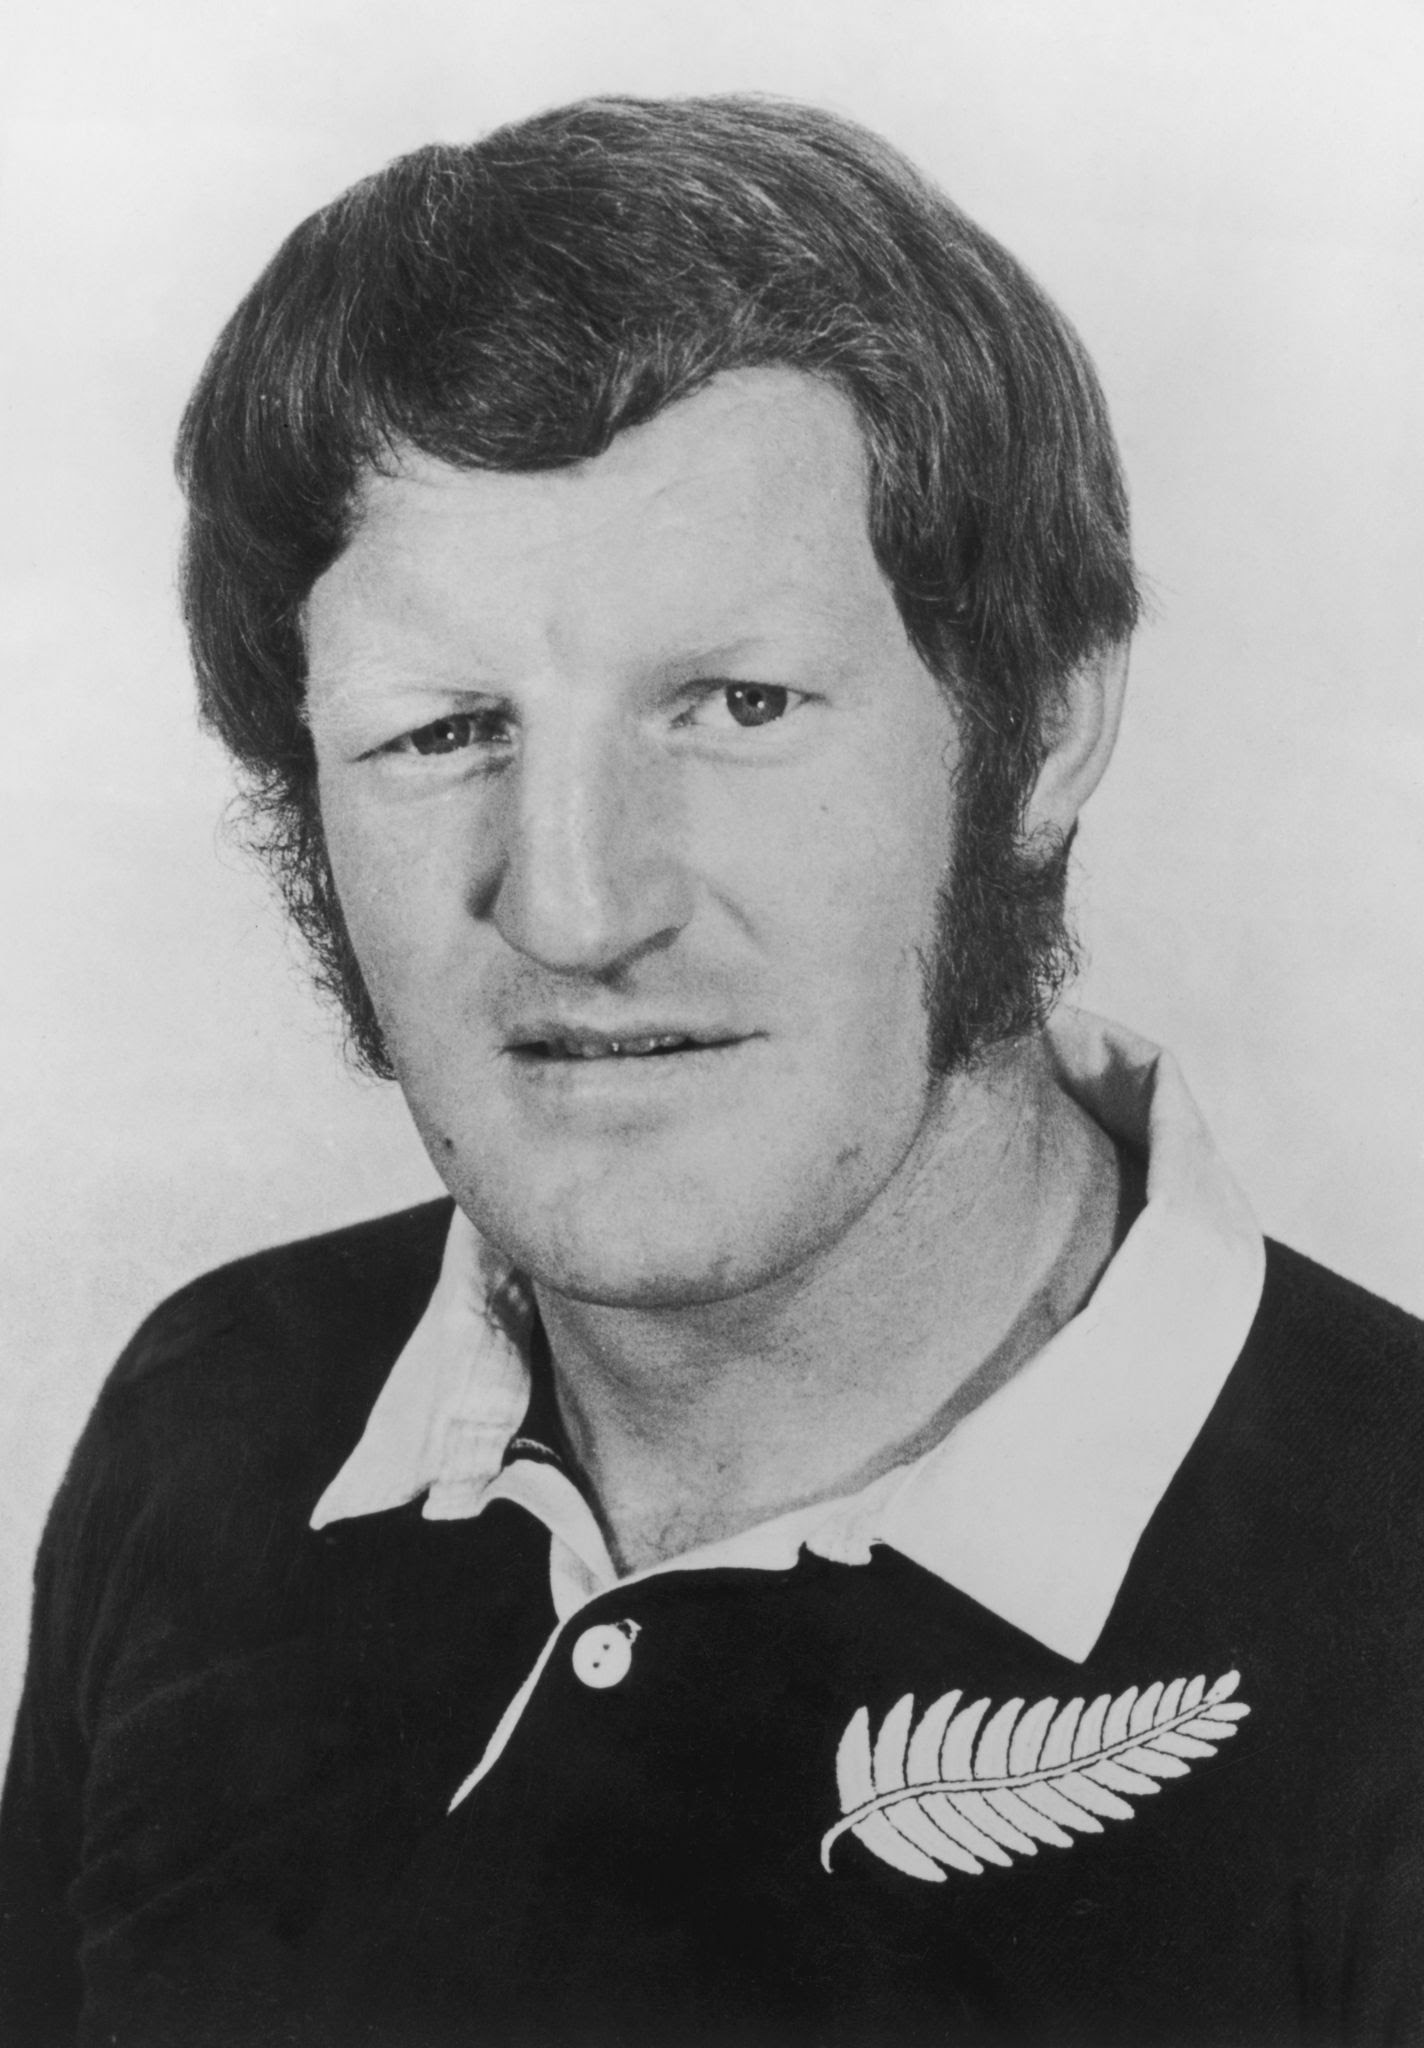 Grizz Wyllie before the All Blacks tour of Britain in October 1972. Photo: Central Press / Hulton...